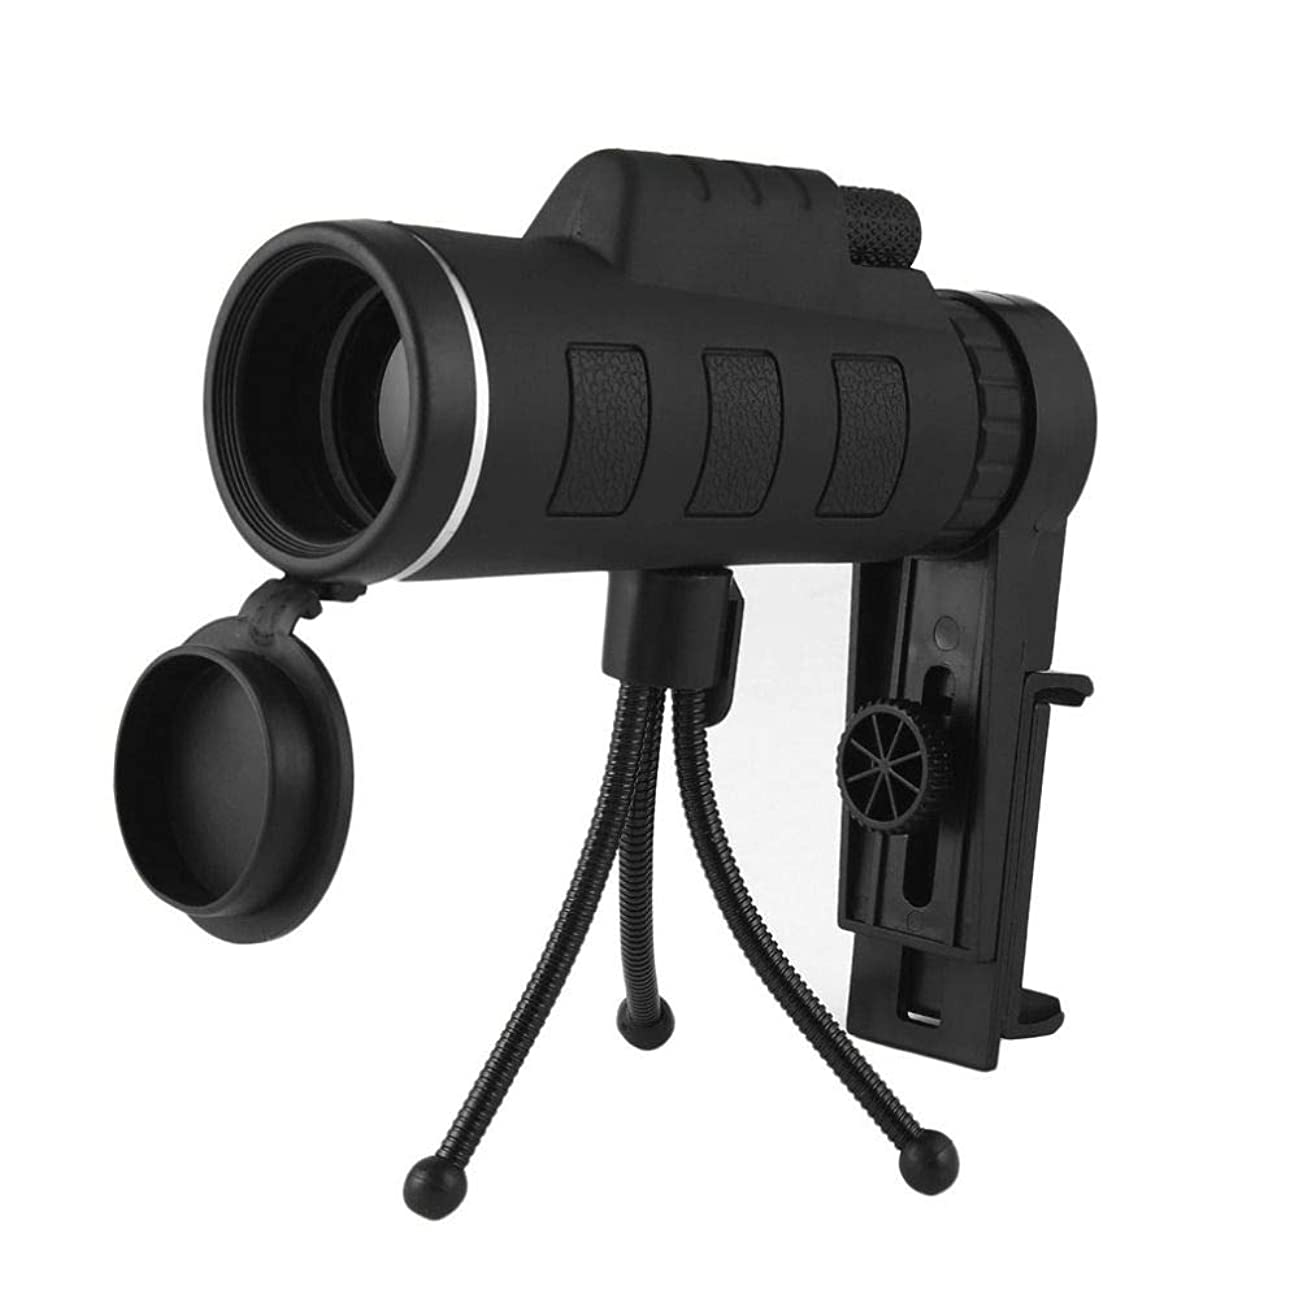 High Definition 40X60 Zoom Focus Outdoor Mobile Optical Lens Monocular Telescope with Compass Phone Clip and Tripod for Mobile Phone Night Vision Waterproof (Telescope+ Phone Holder+Tripod)